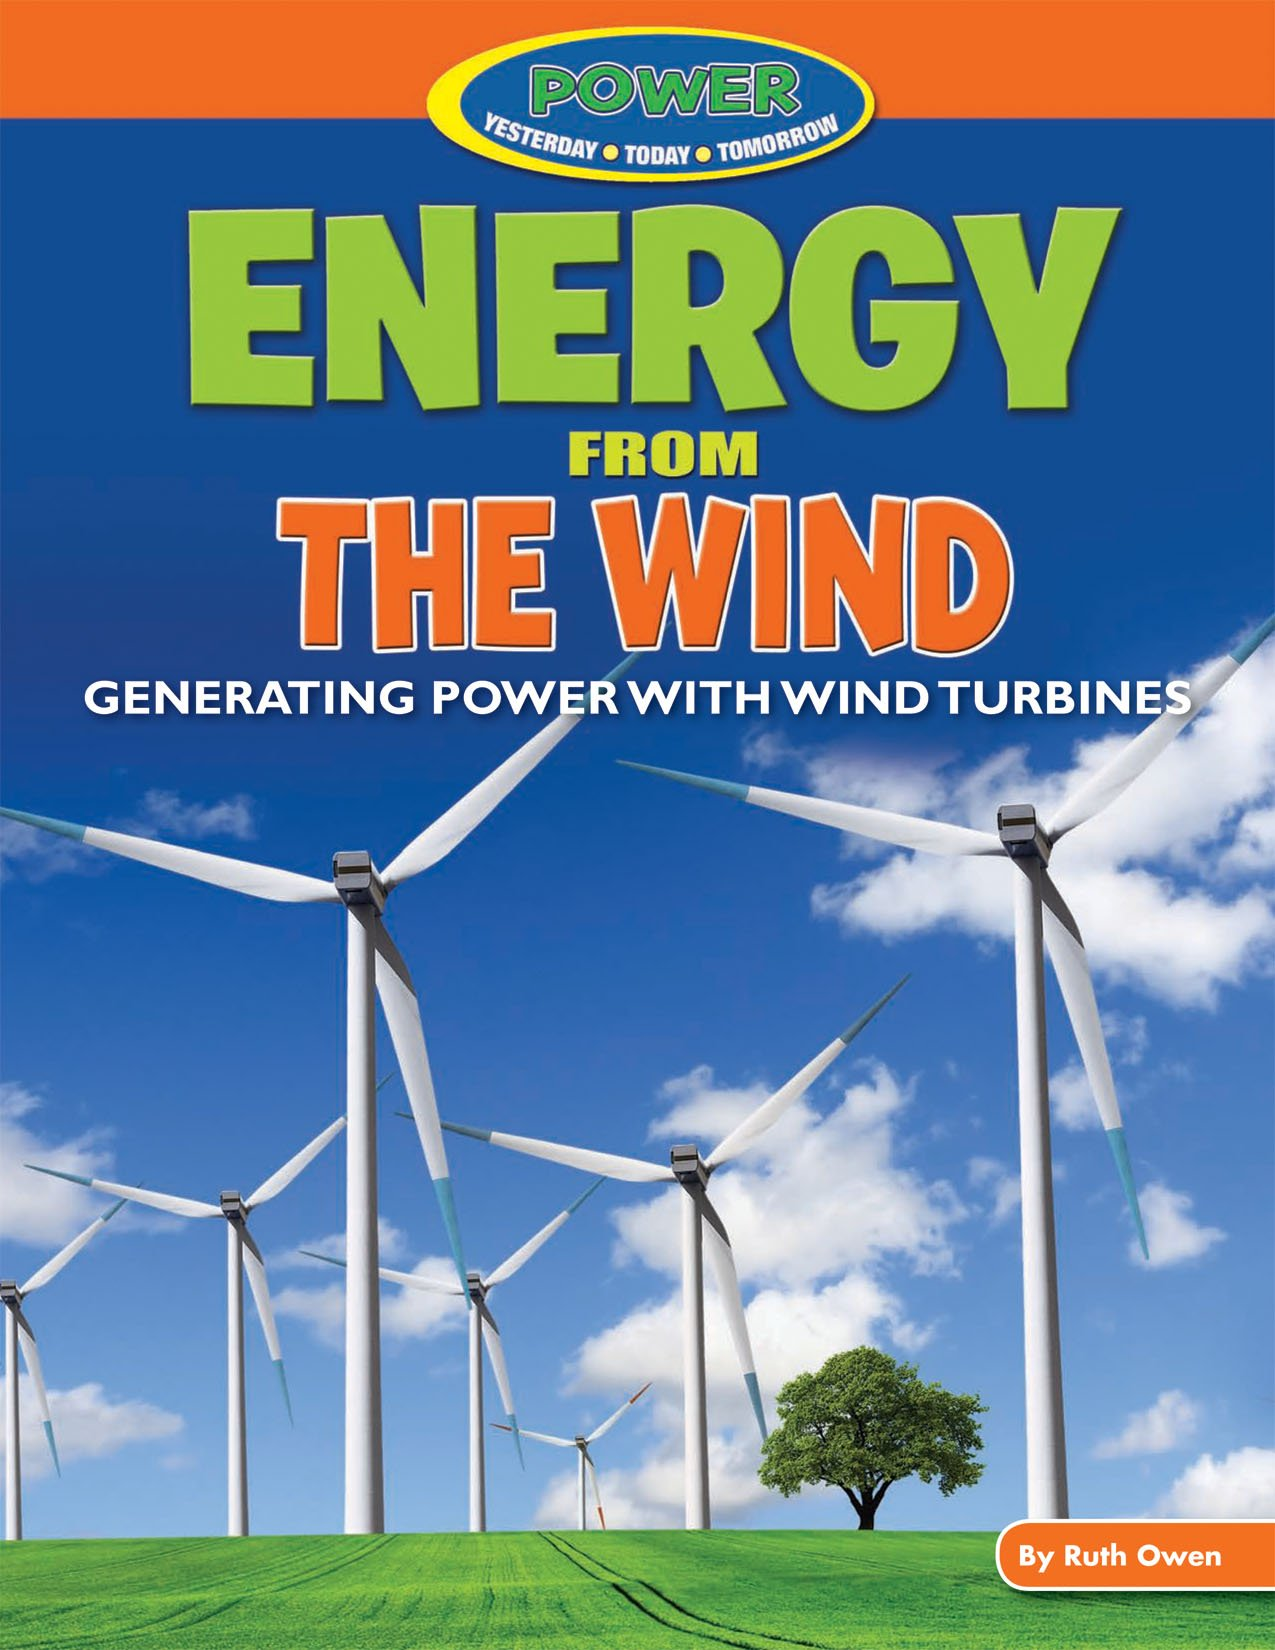 Energy from the Wind: Generating Power With Wind Turbines (Power: Yesterday, Today, Tomorrow)